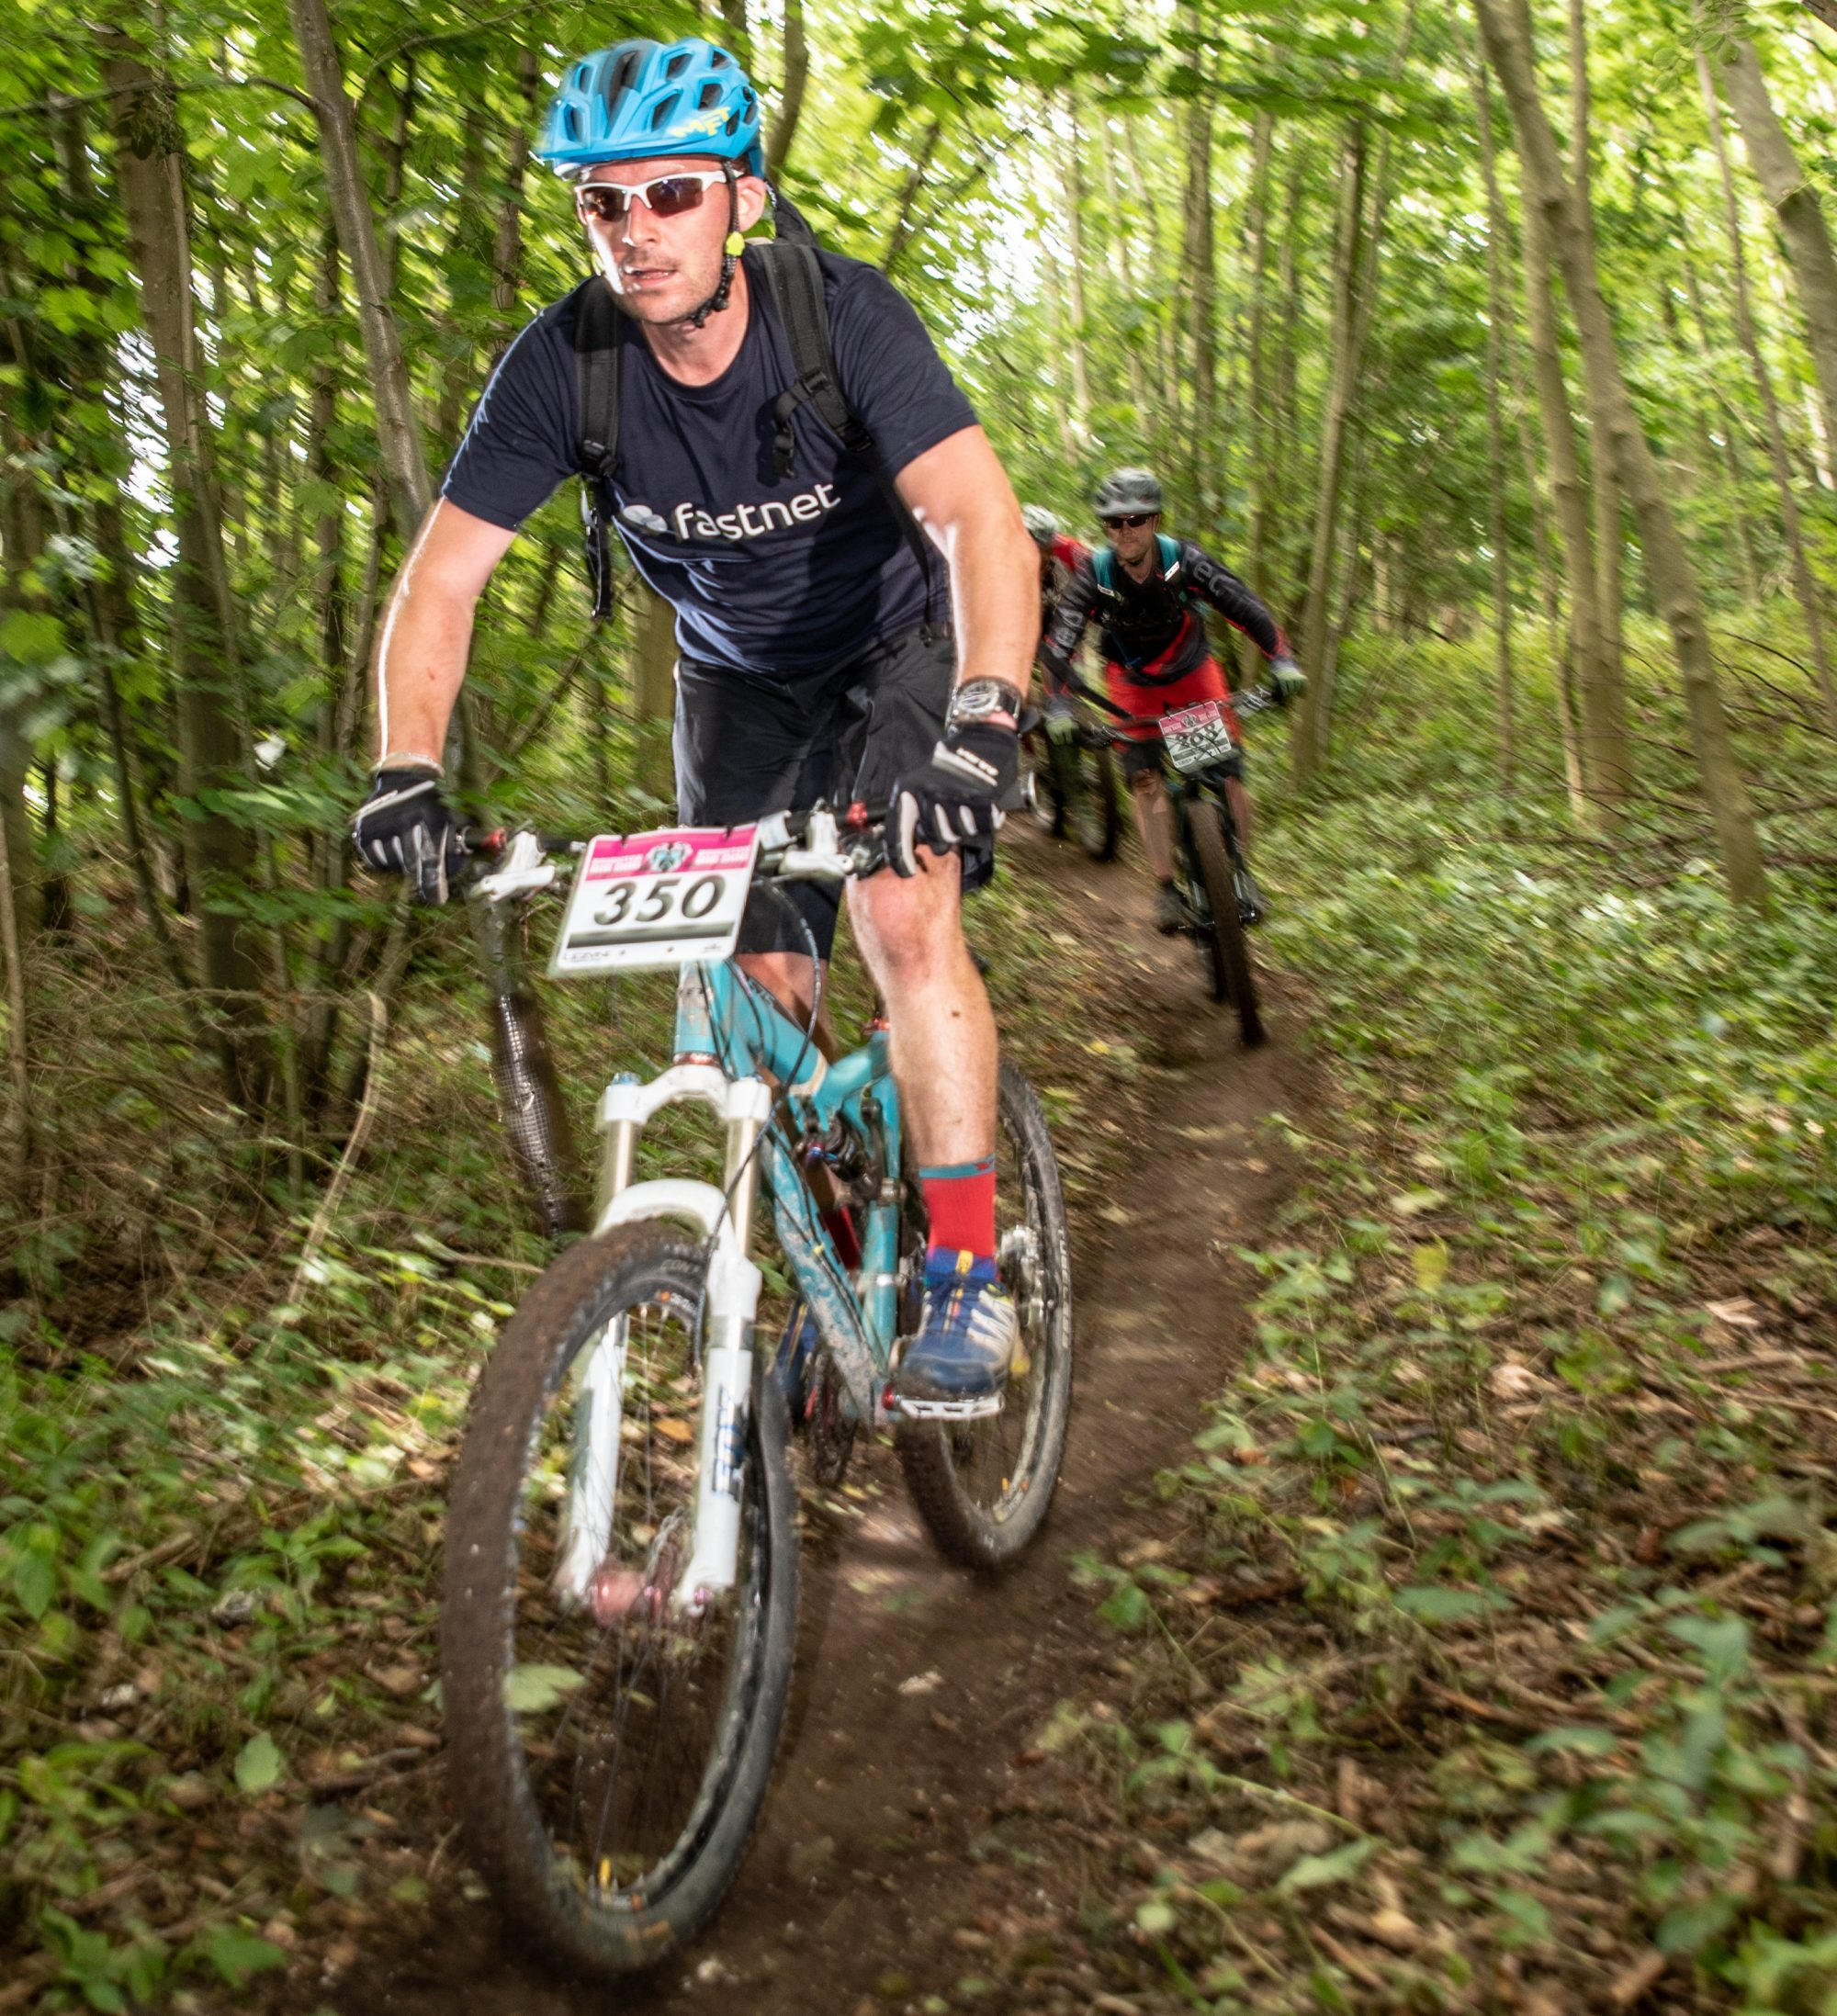 IMBA UK - IMBA | International Mountain Biking Association